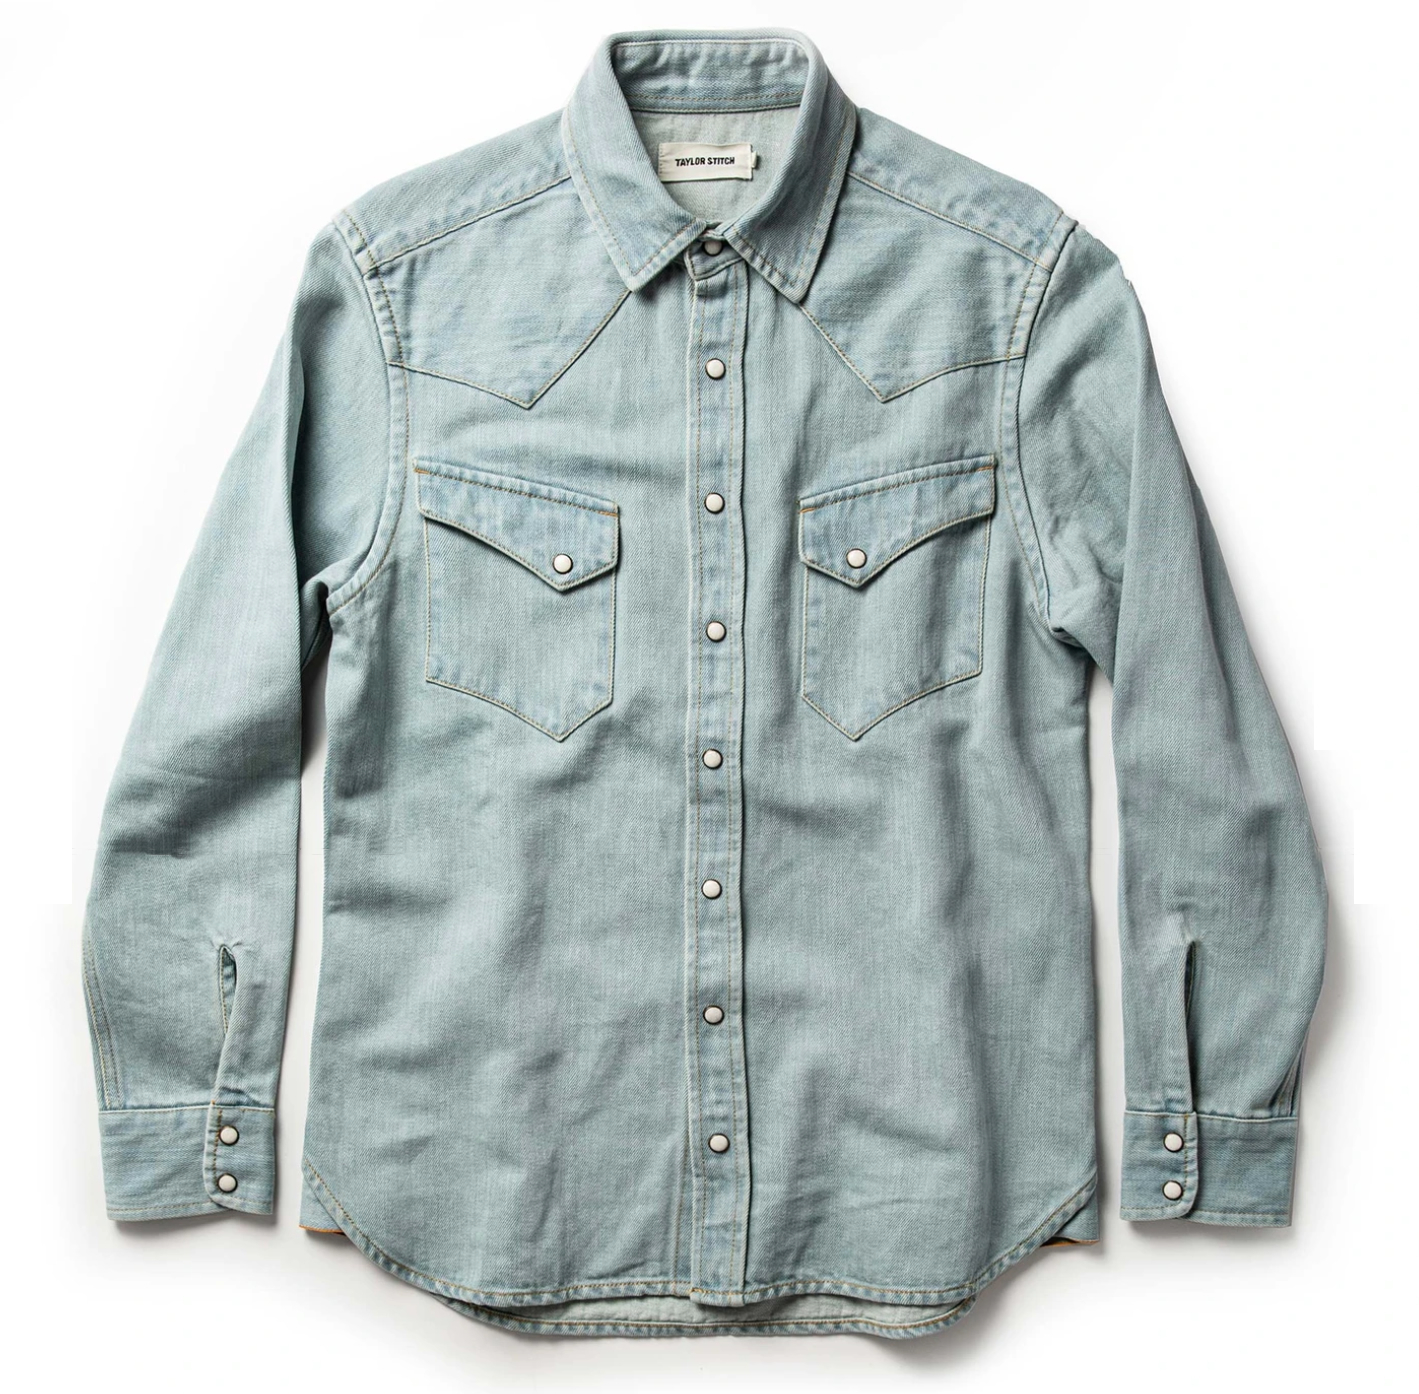 Snap Button Shirt of the Day: Taylor Stitch – The Western Shirt in Washed  Denim – Snap Button Shirt Guy